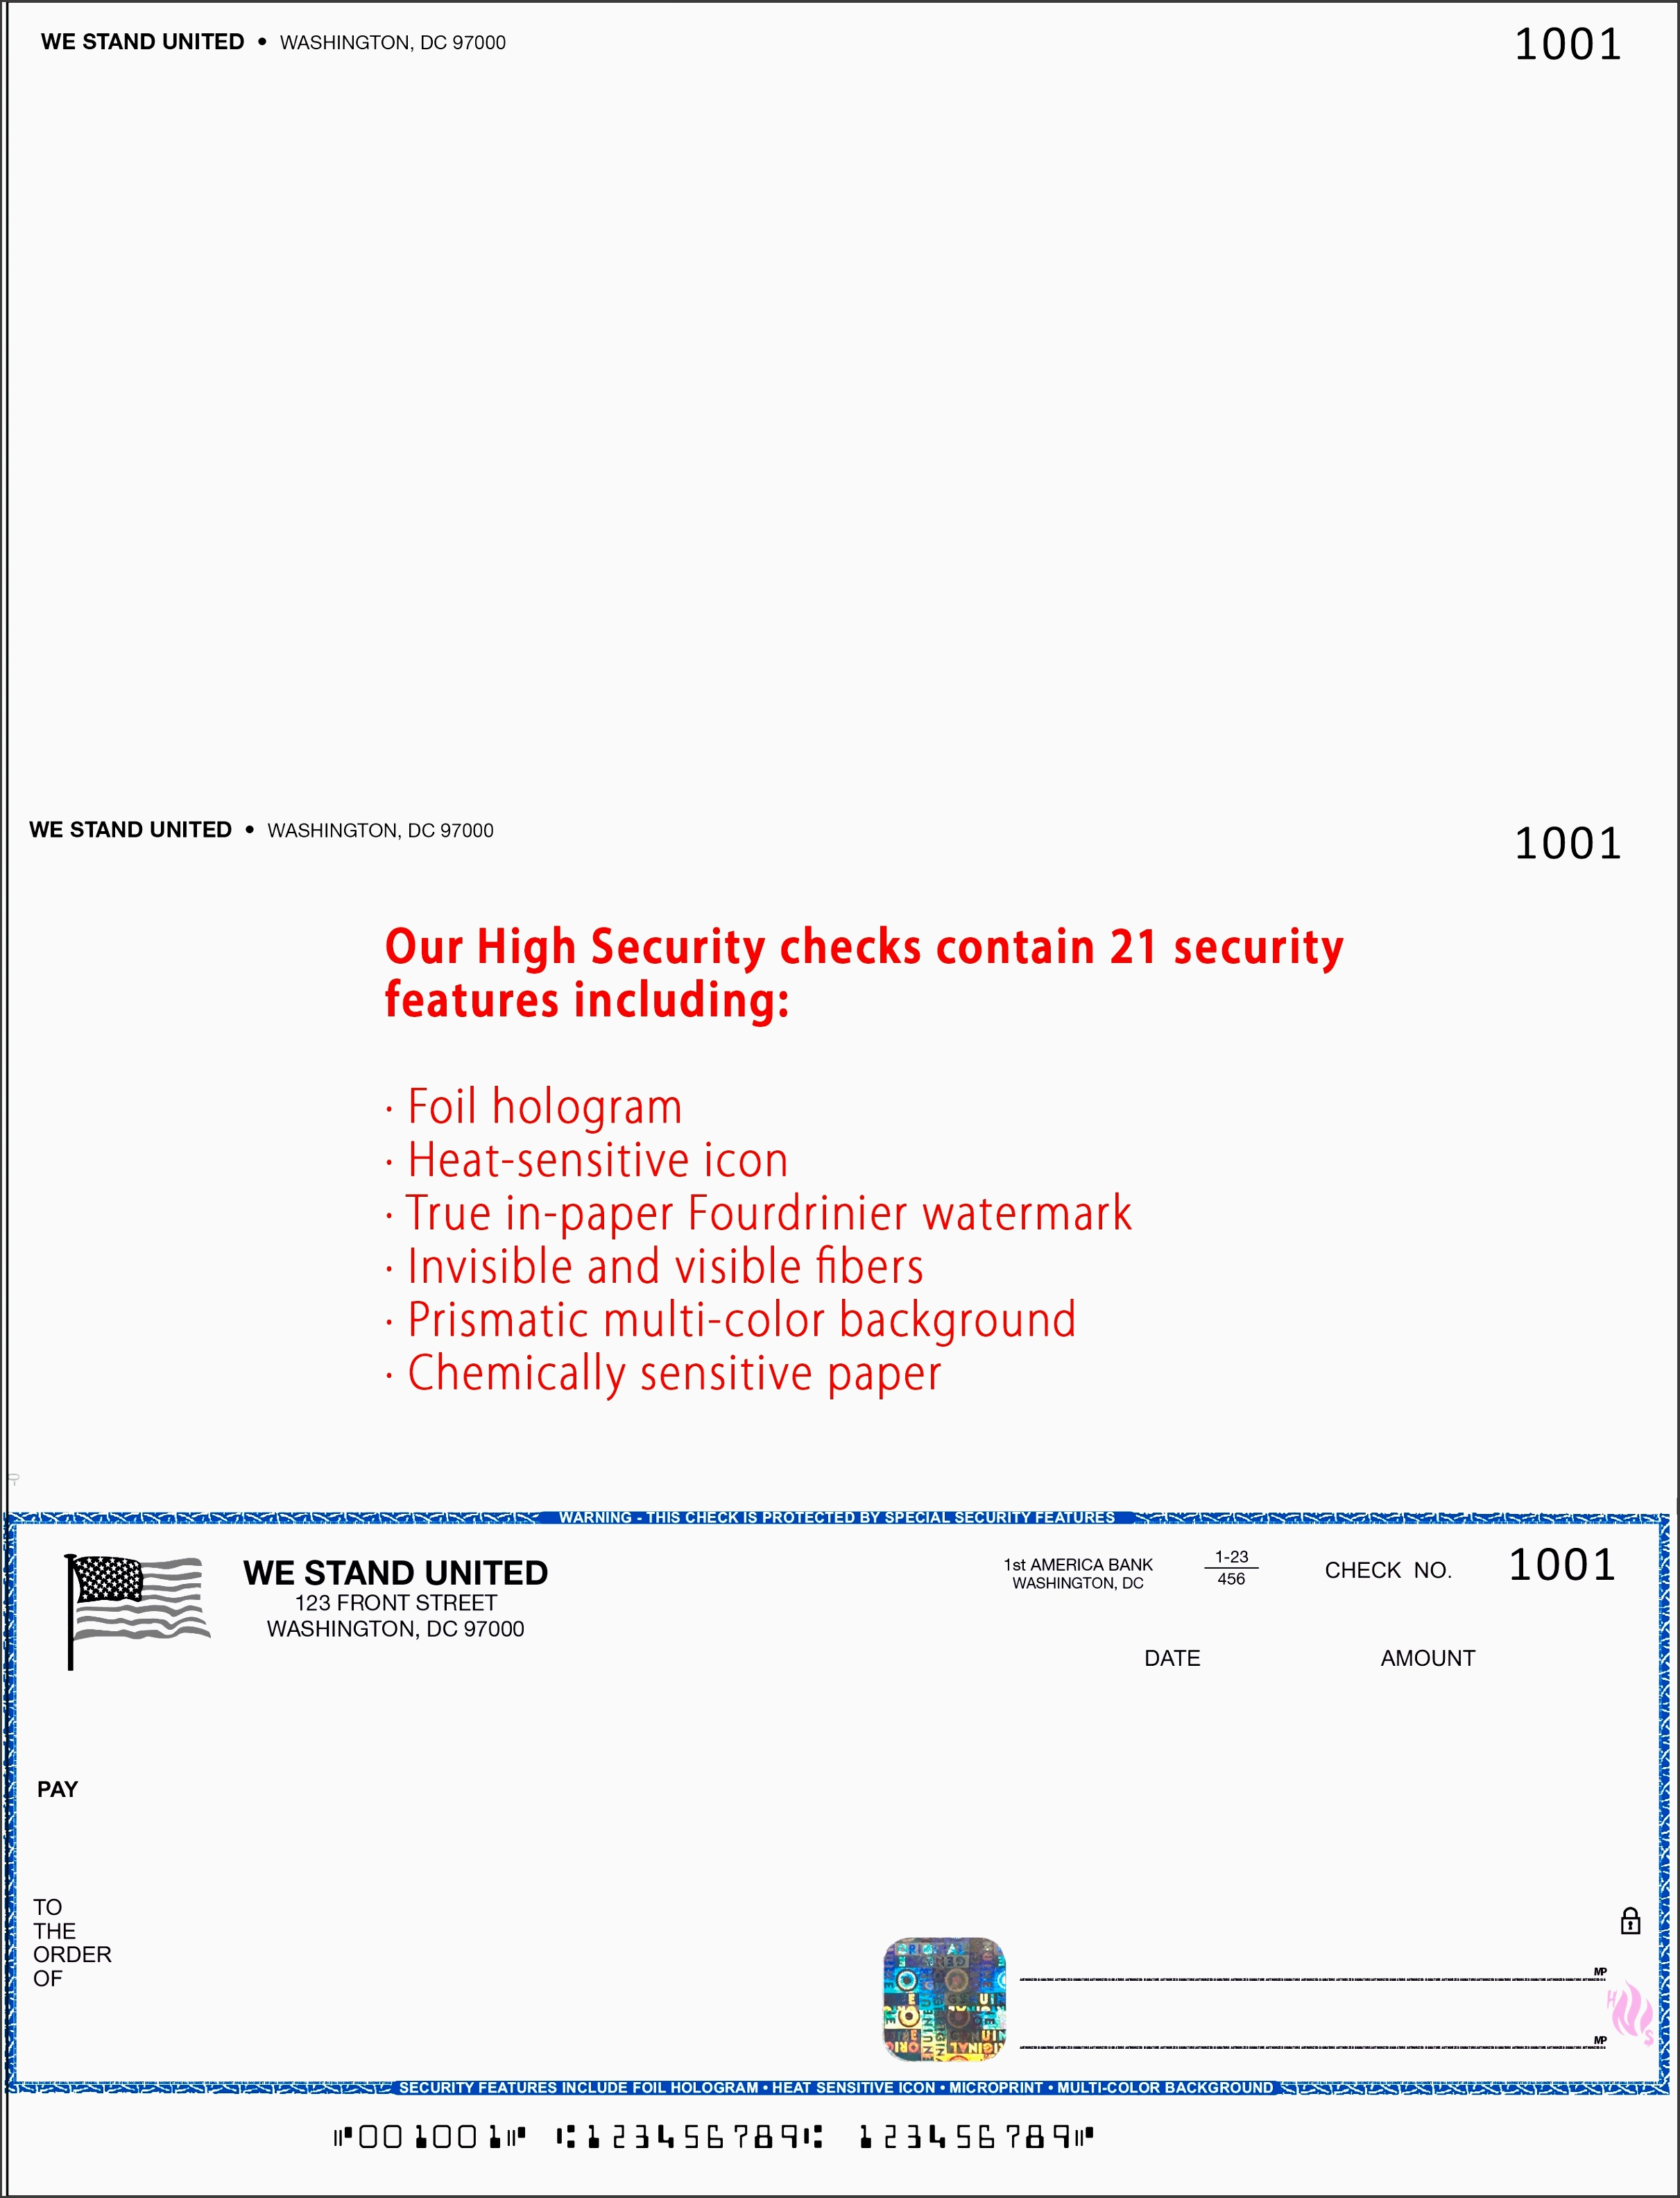 sample business continuity plan checklist sample blank business checks sample business plan checklist sample business check